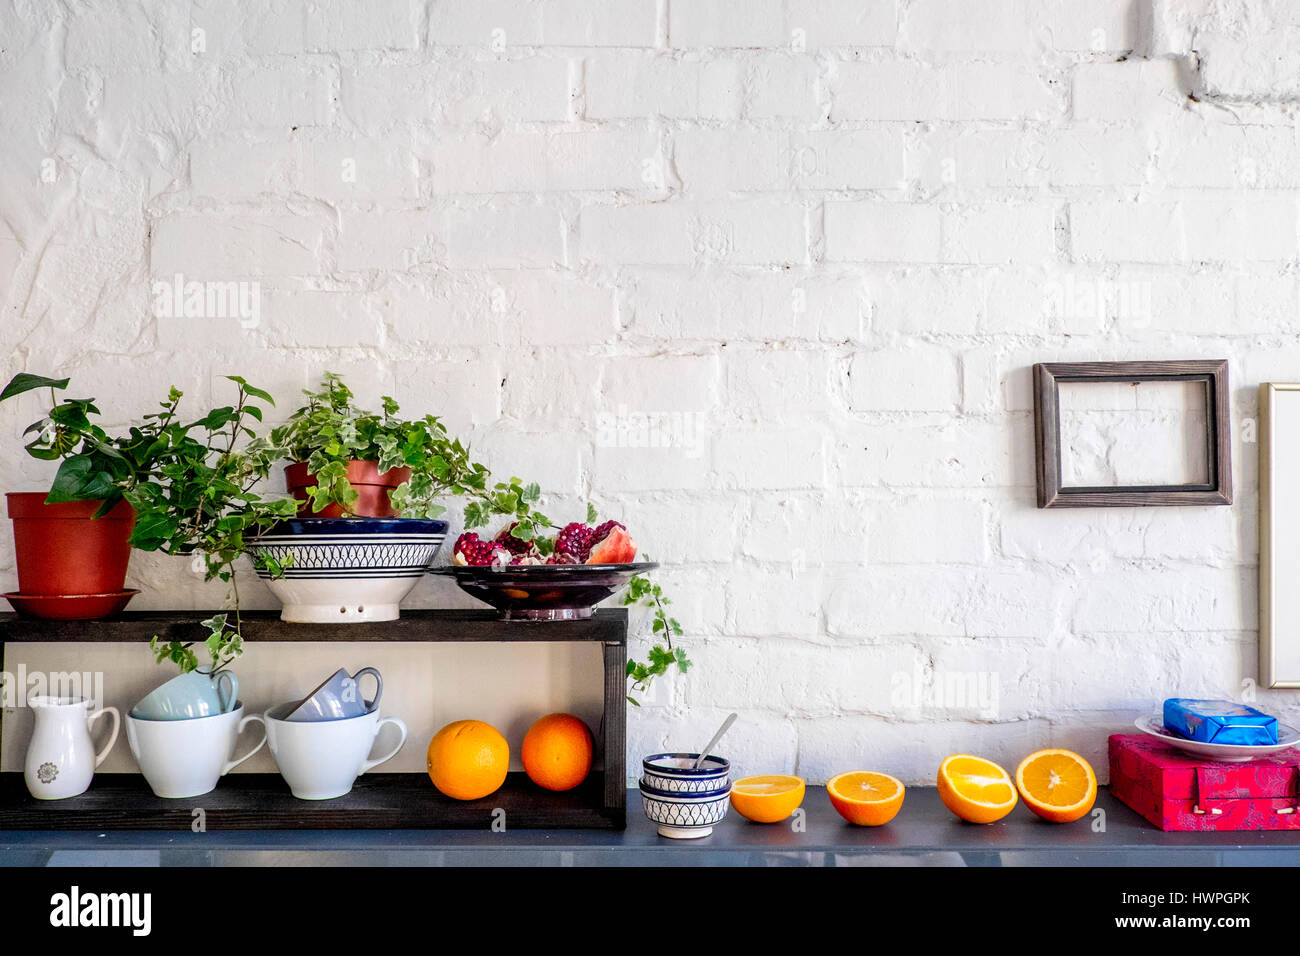 Potted plants and fruits with kitchen utensils on table against brick wall - Stock Image